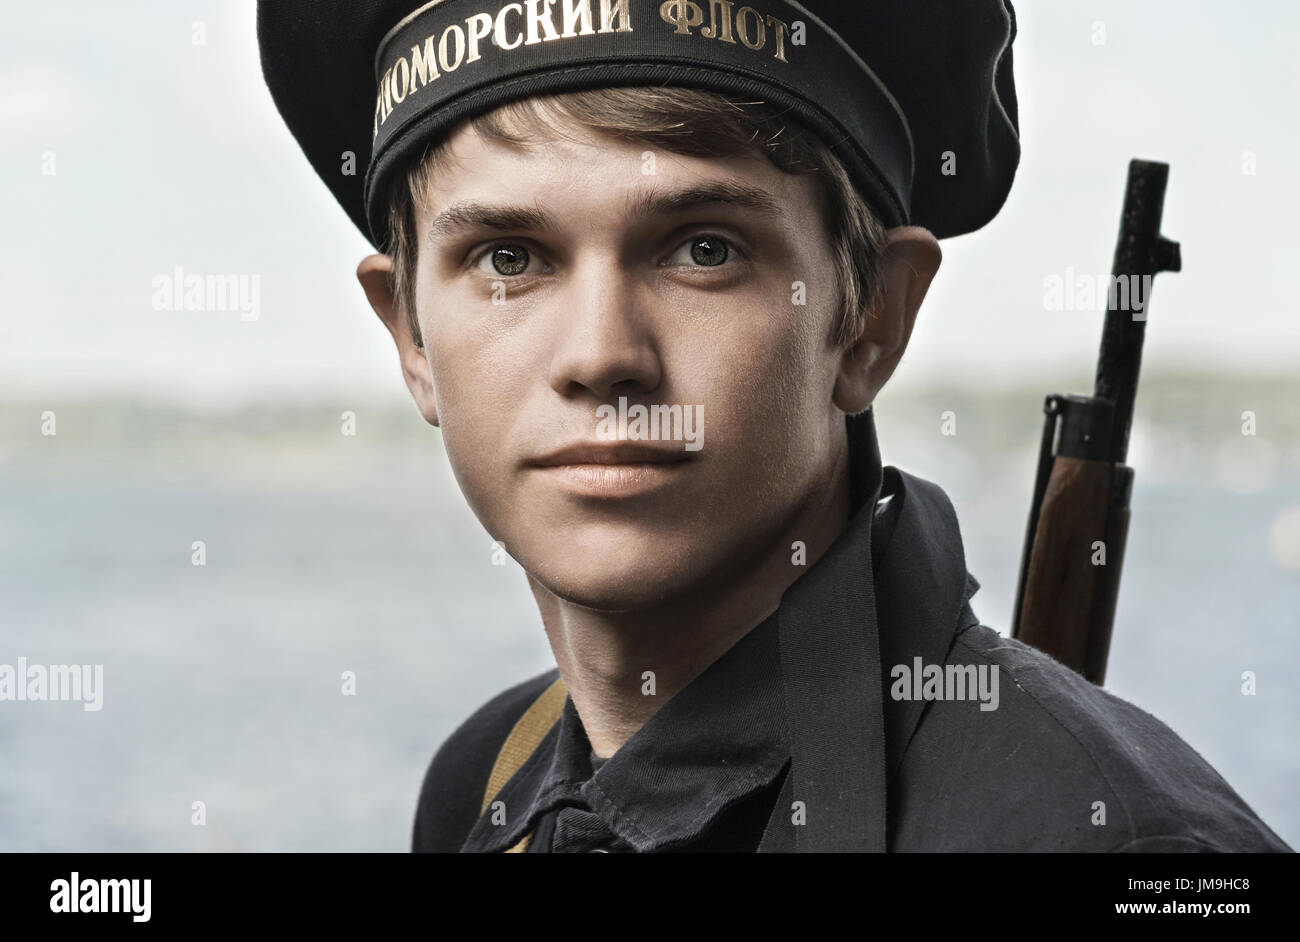 Historical festival of the Second World war in Samara , July 26, 2015. Portrait of a cabin boy on the background of the Volga river. - Stock Image